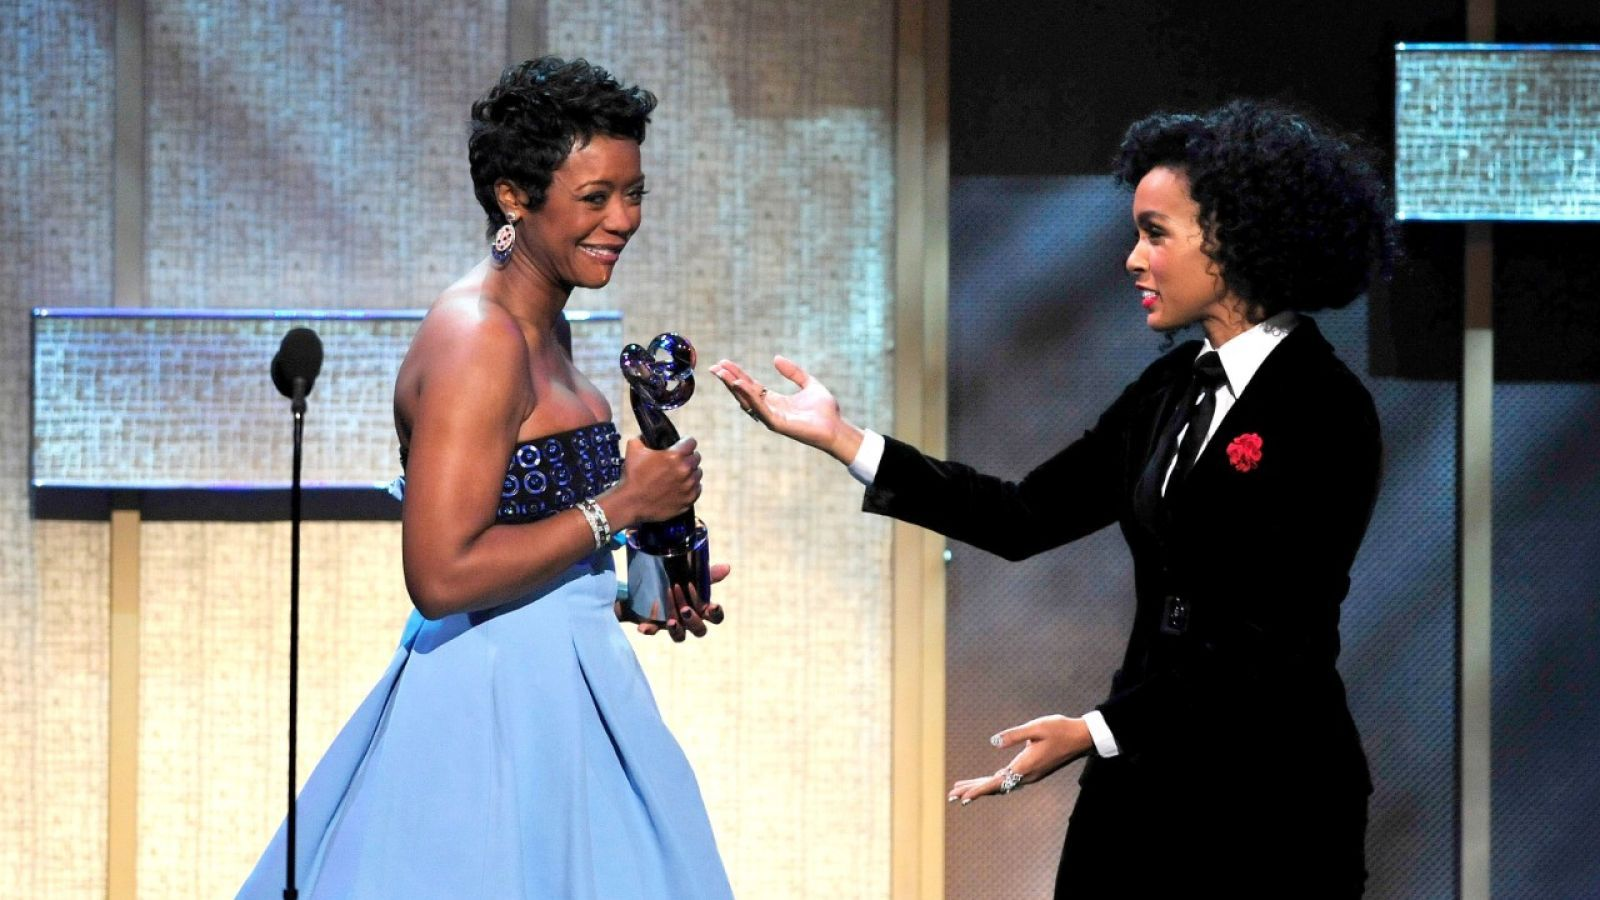 """#BETHonnors Mellody Hobson;  Drops a Major Key to Success - """"Be Brave, Not Color Blind."""" Great recap of Mellody Dobson's powerful #TED2014 talk on #racism http://bit.ly/1oEVnqt"""